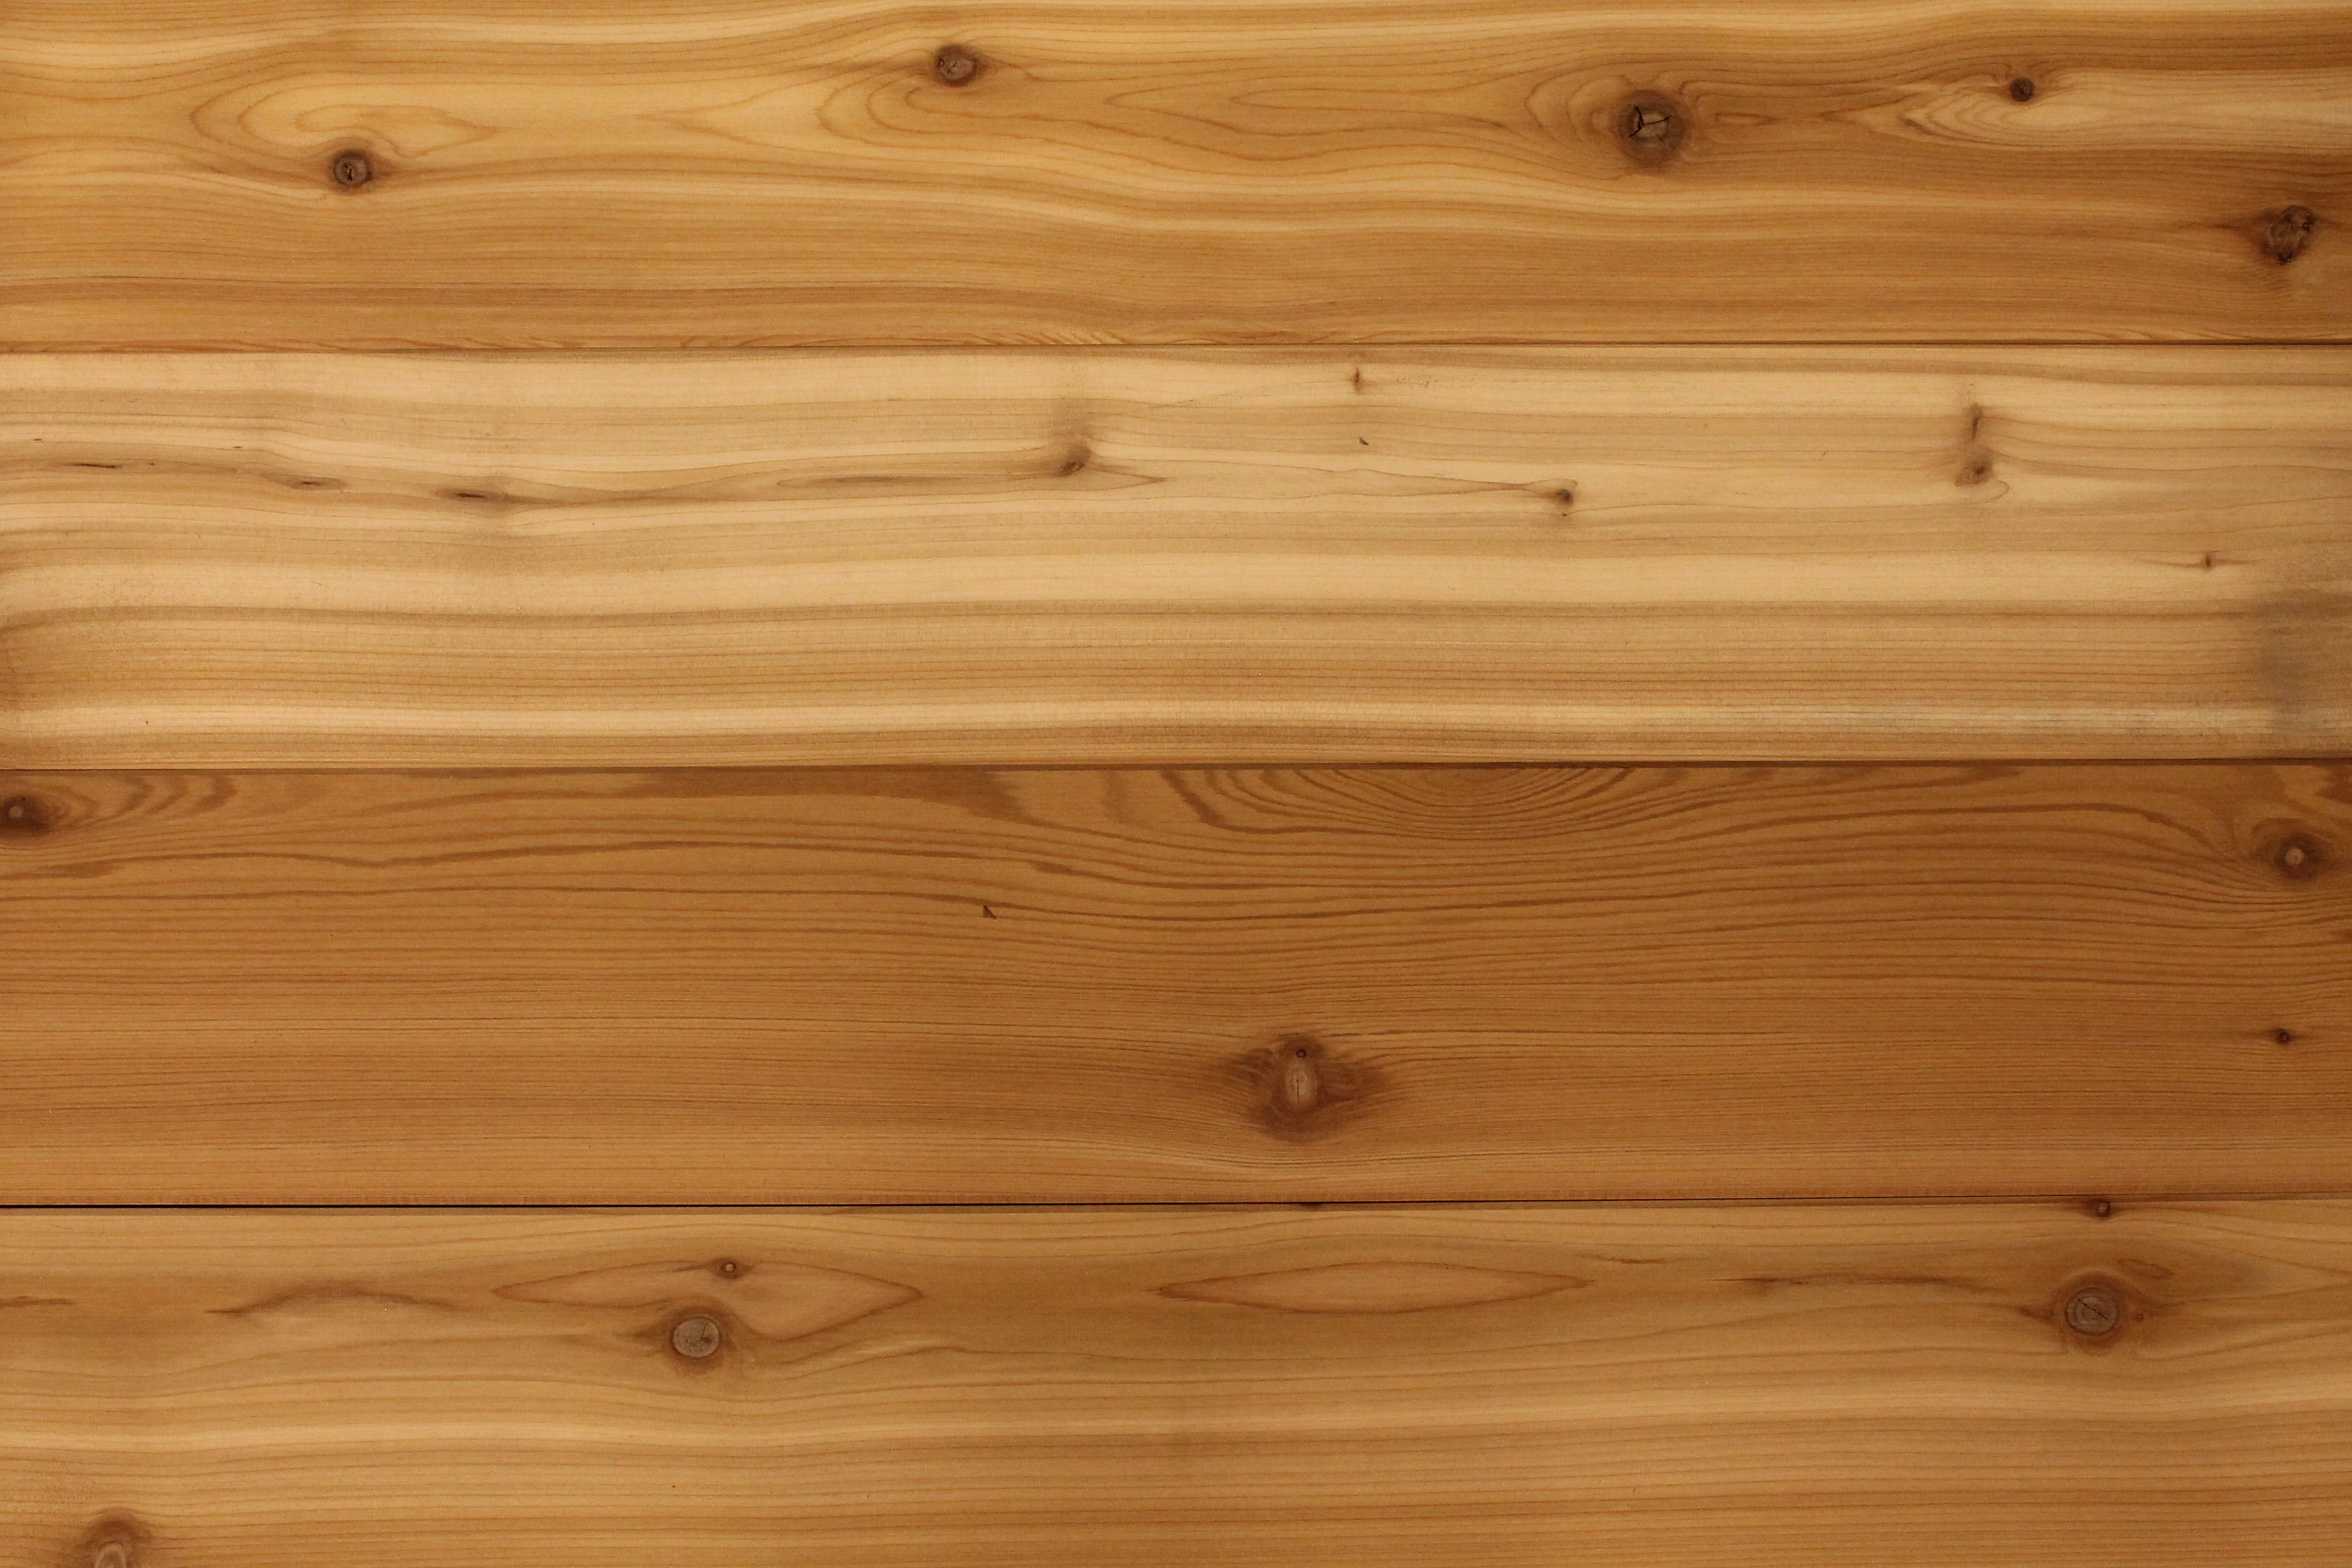 Knotty Bevel Collection Kwaterski Bros Wood Products Inc